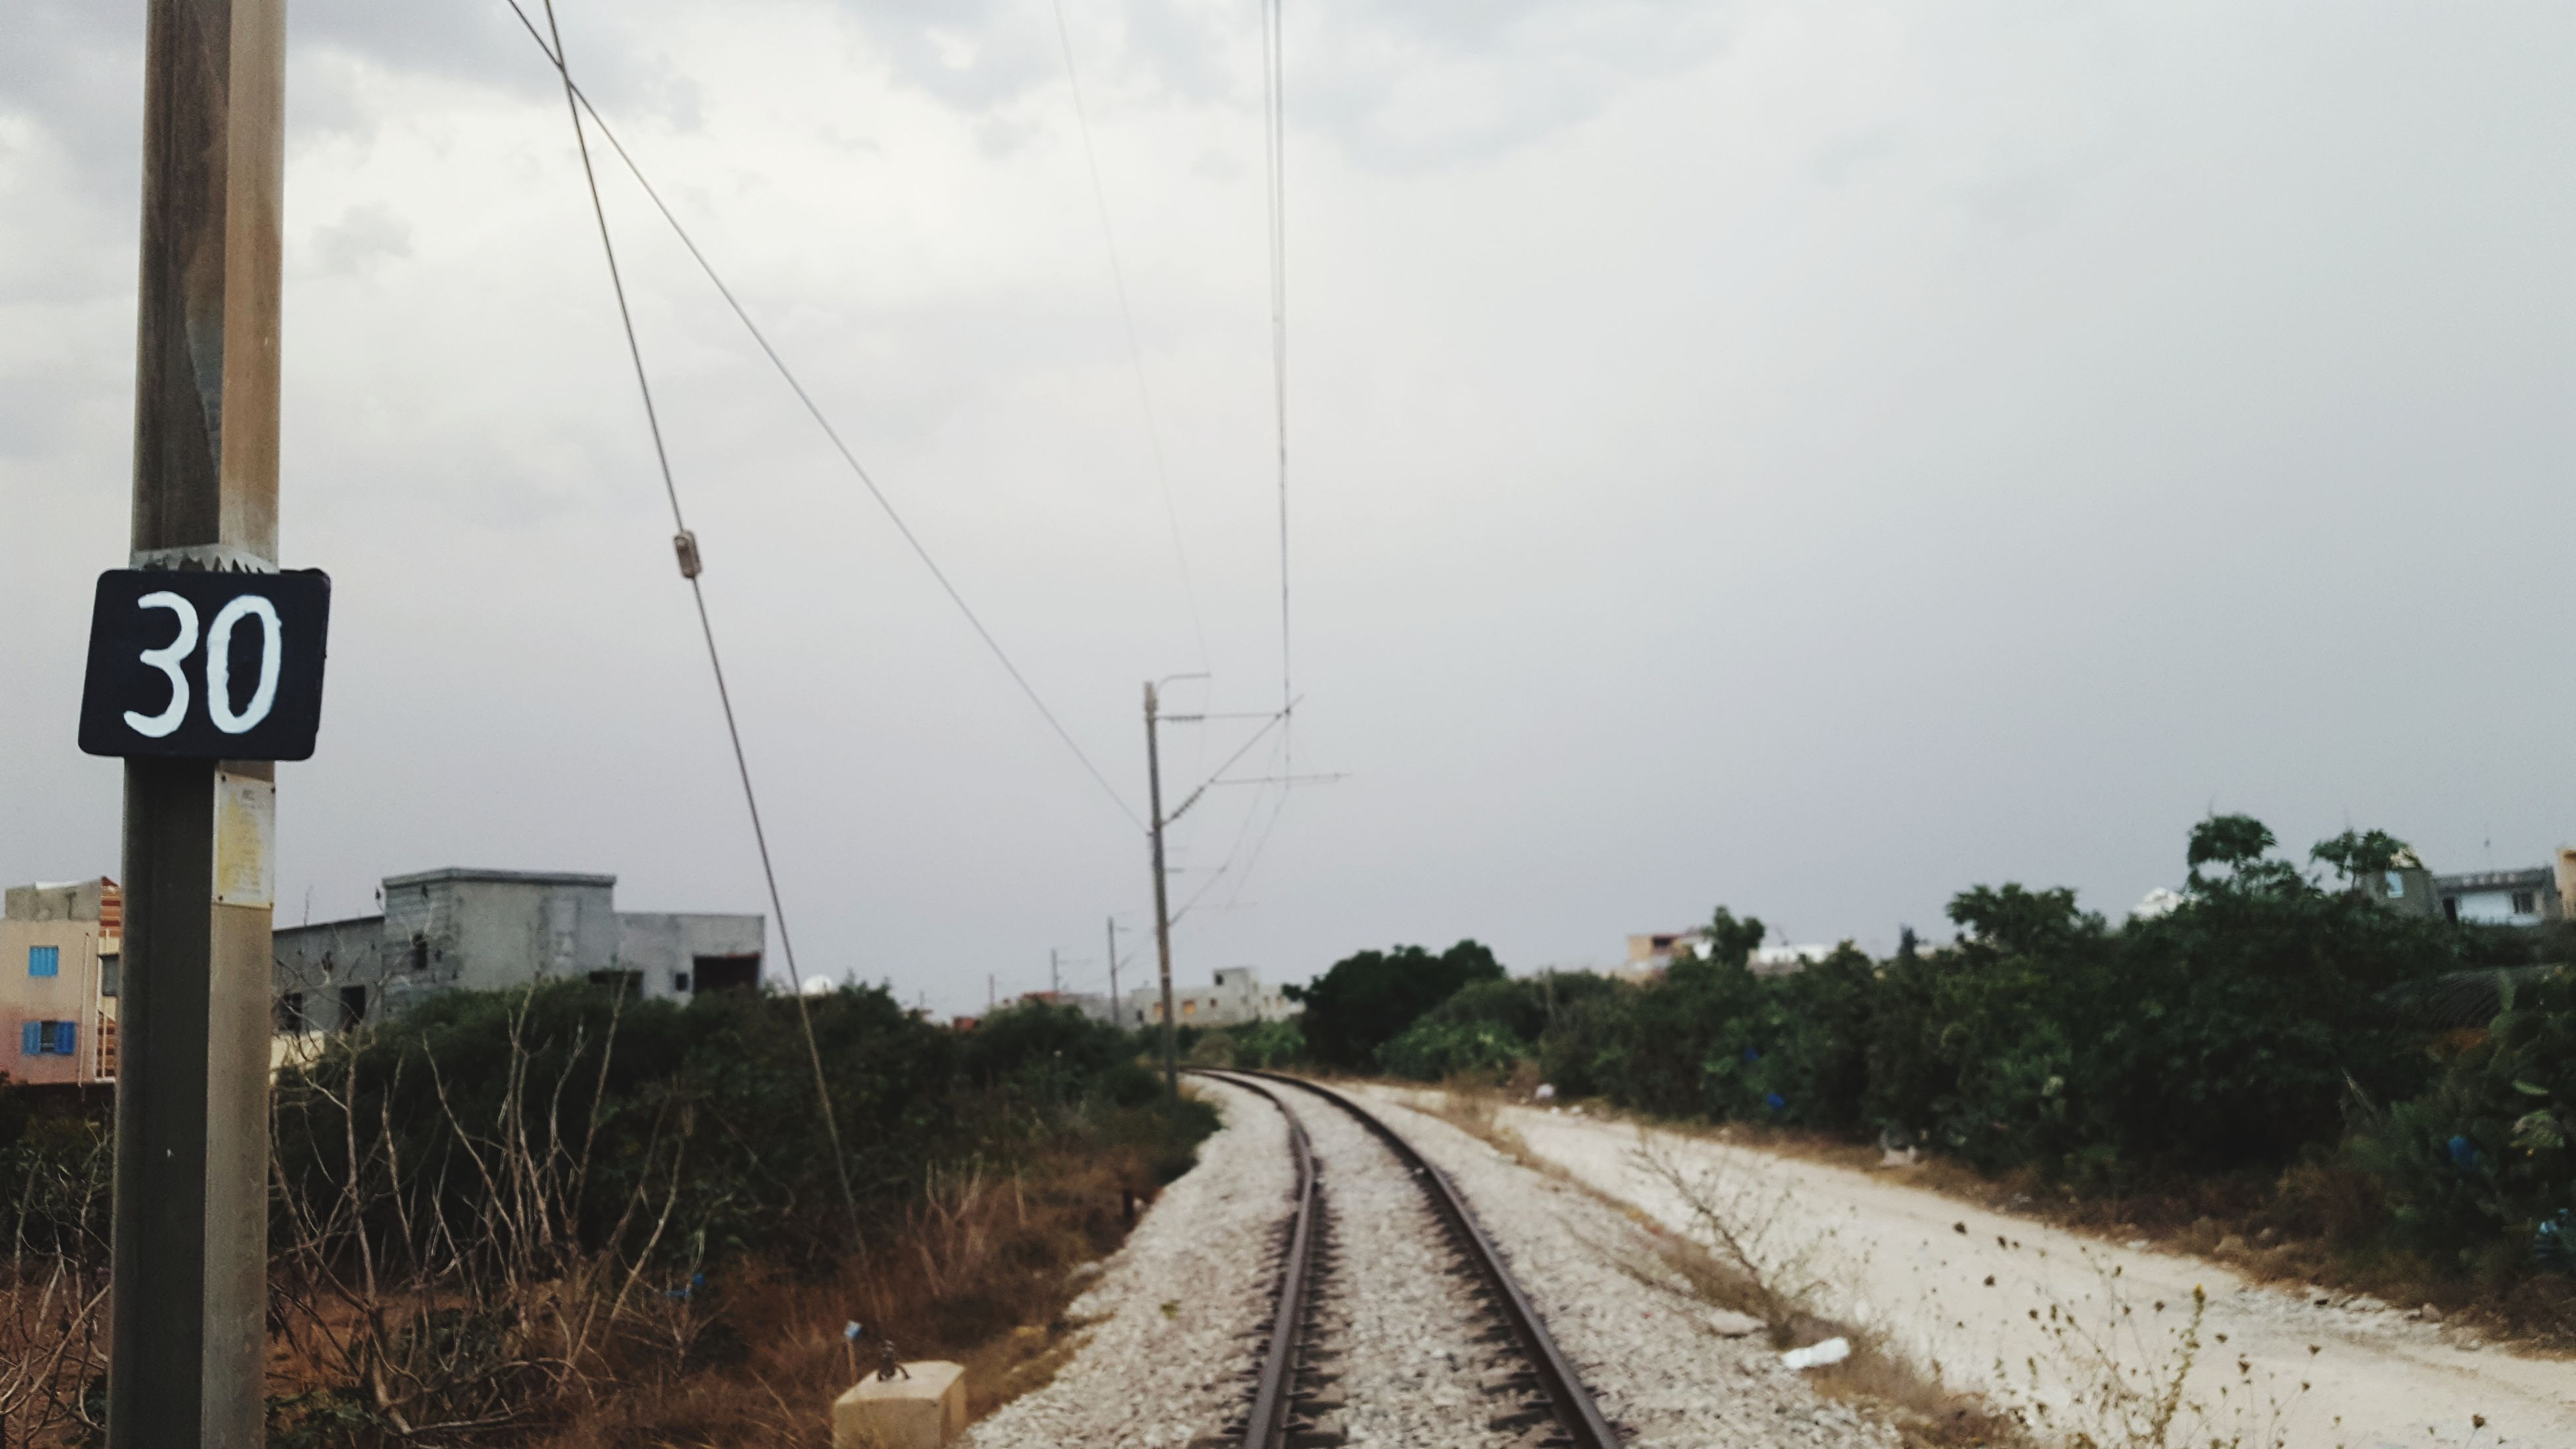 railroad track, transportation, rail transportation, sky, day, tree, cloud - sky, the way forward, electricity pylon, no people, outdoors, cable, nature